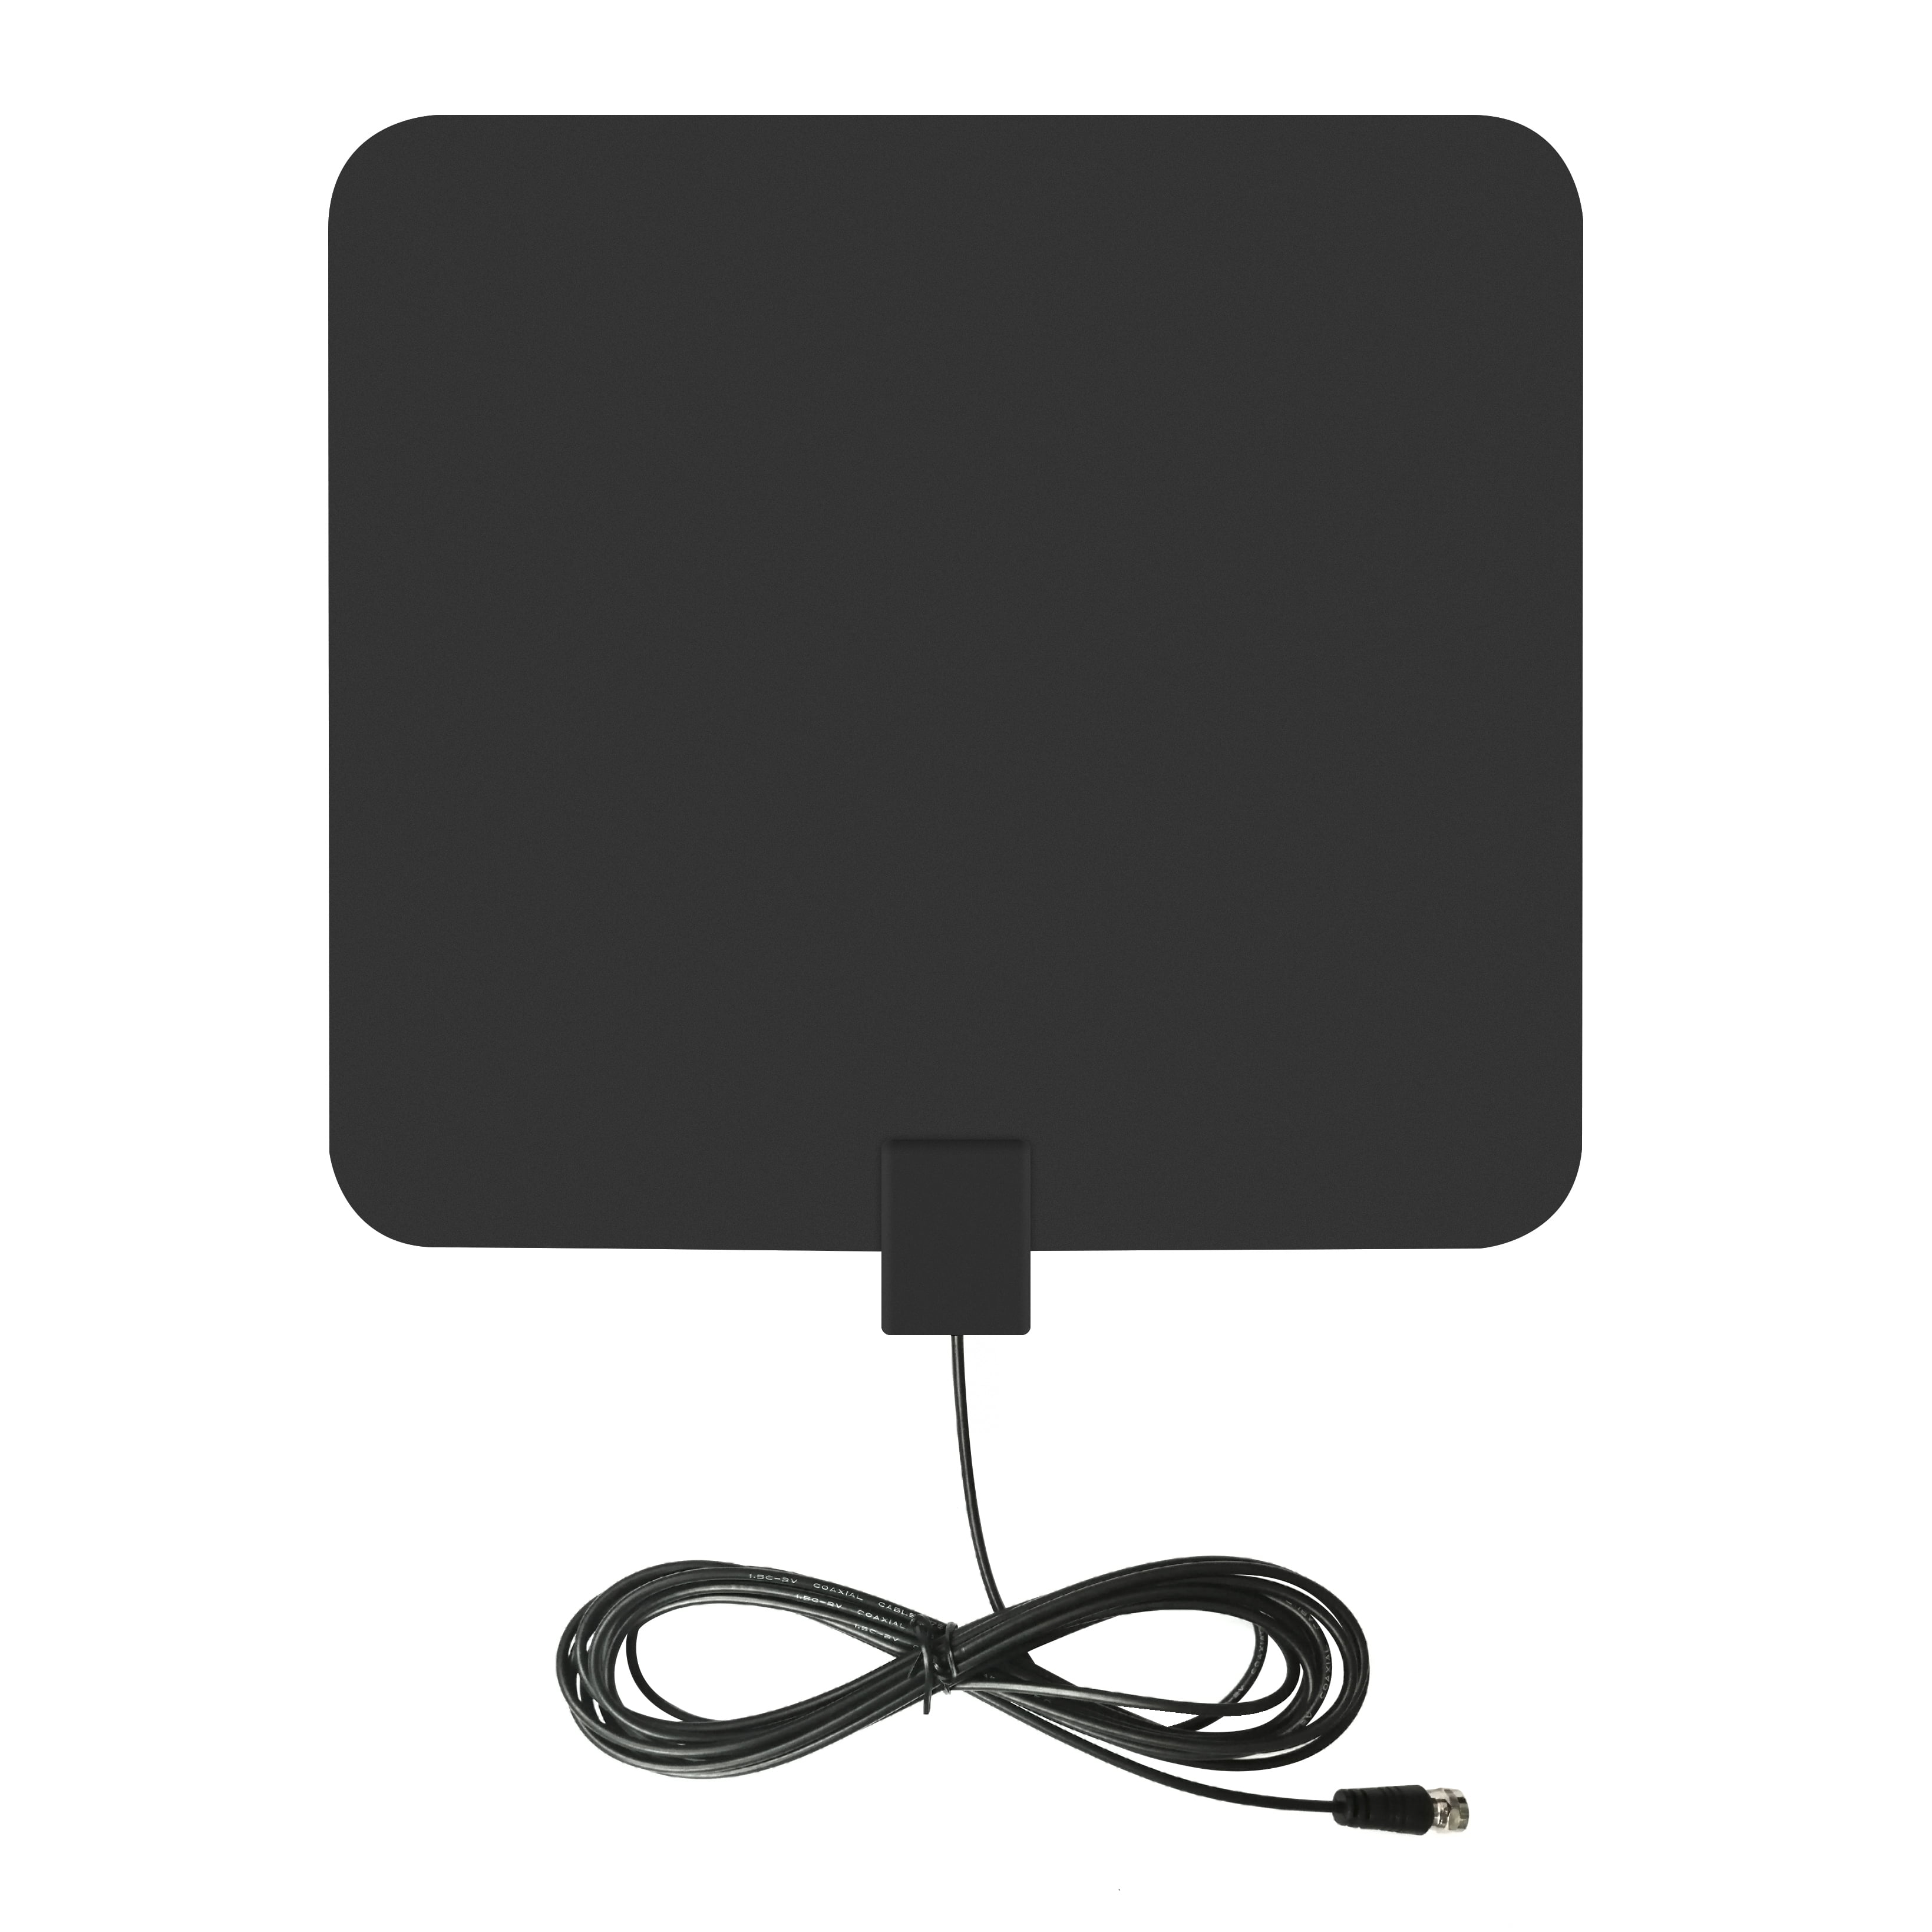 20ft Coaxial Cable Antenna TV Digital HD TV Antenna for Digital TV Indoor HDTV Antenna Amplified HD Digital TV Antenna Signals Up To 80 Miles Magic Stick TV Max HD Outdoor HD Antenna